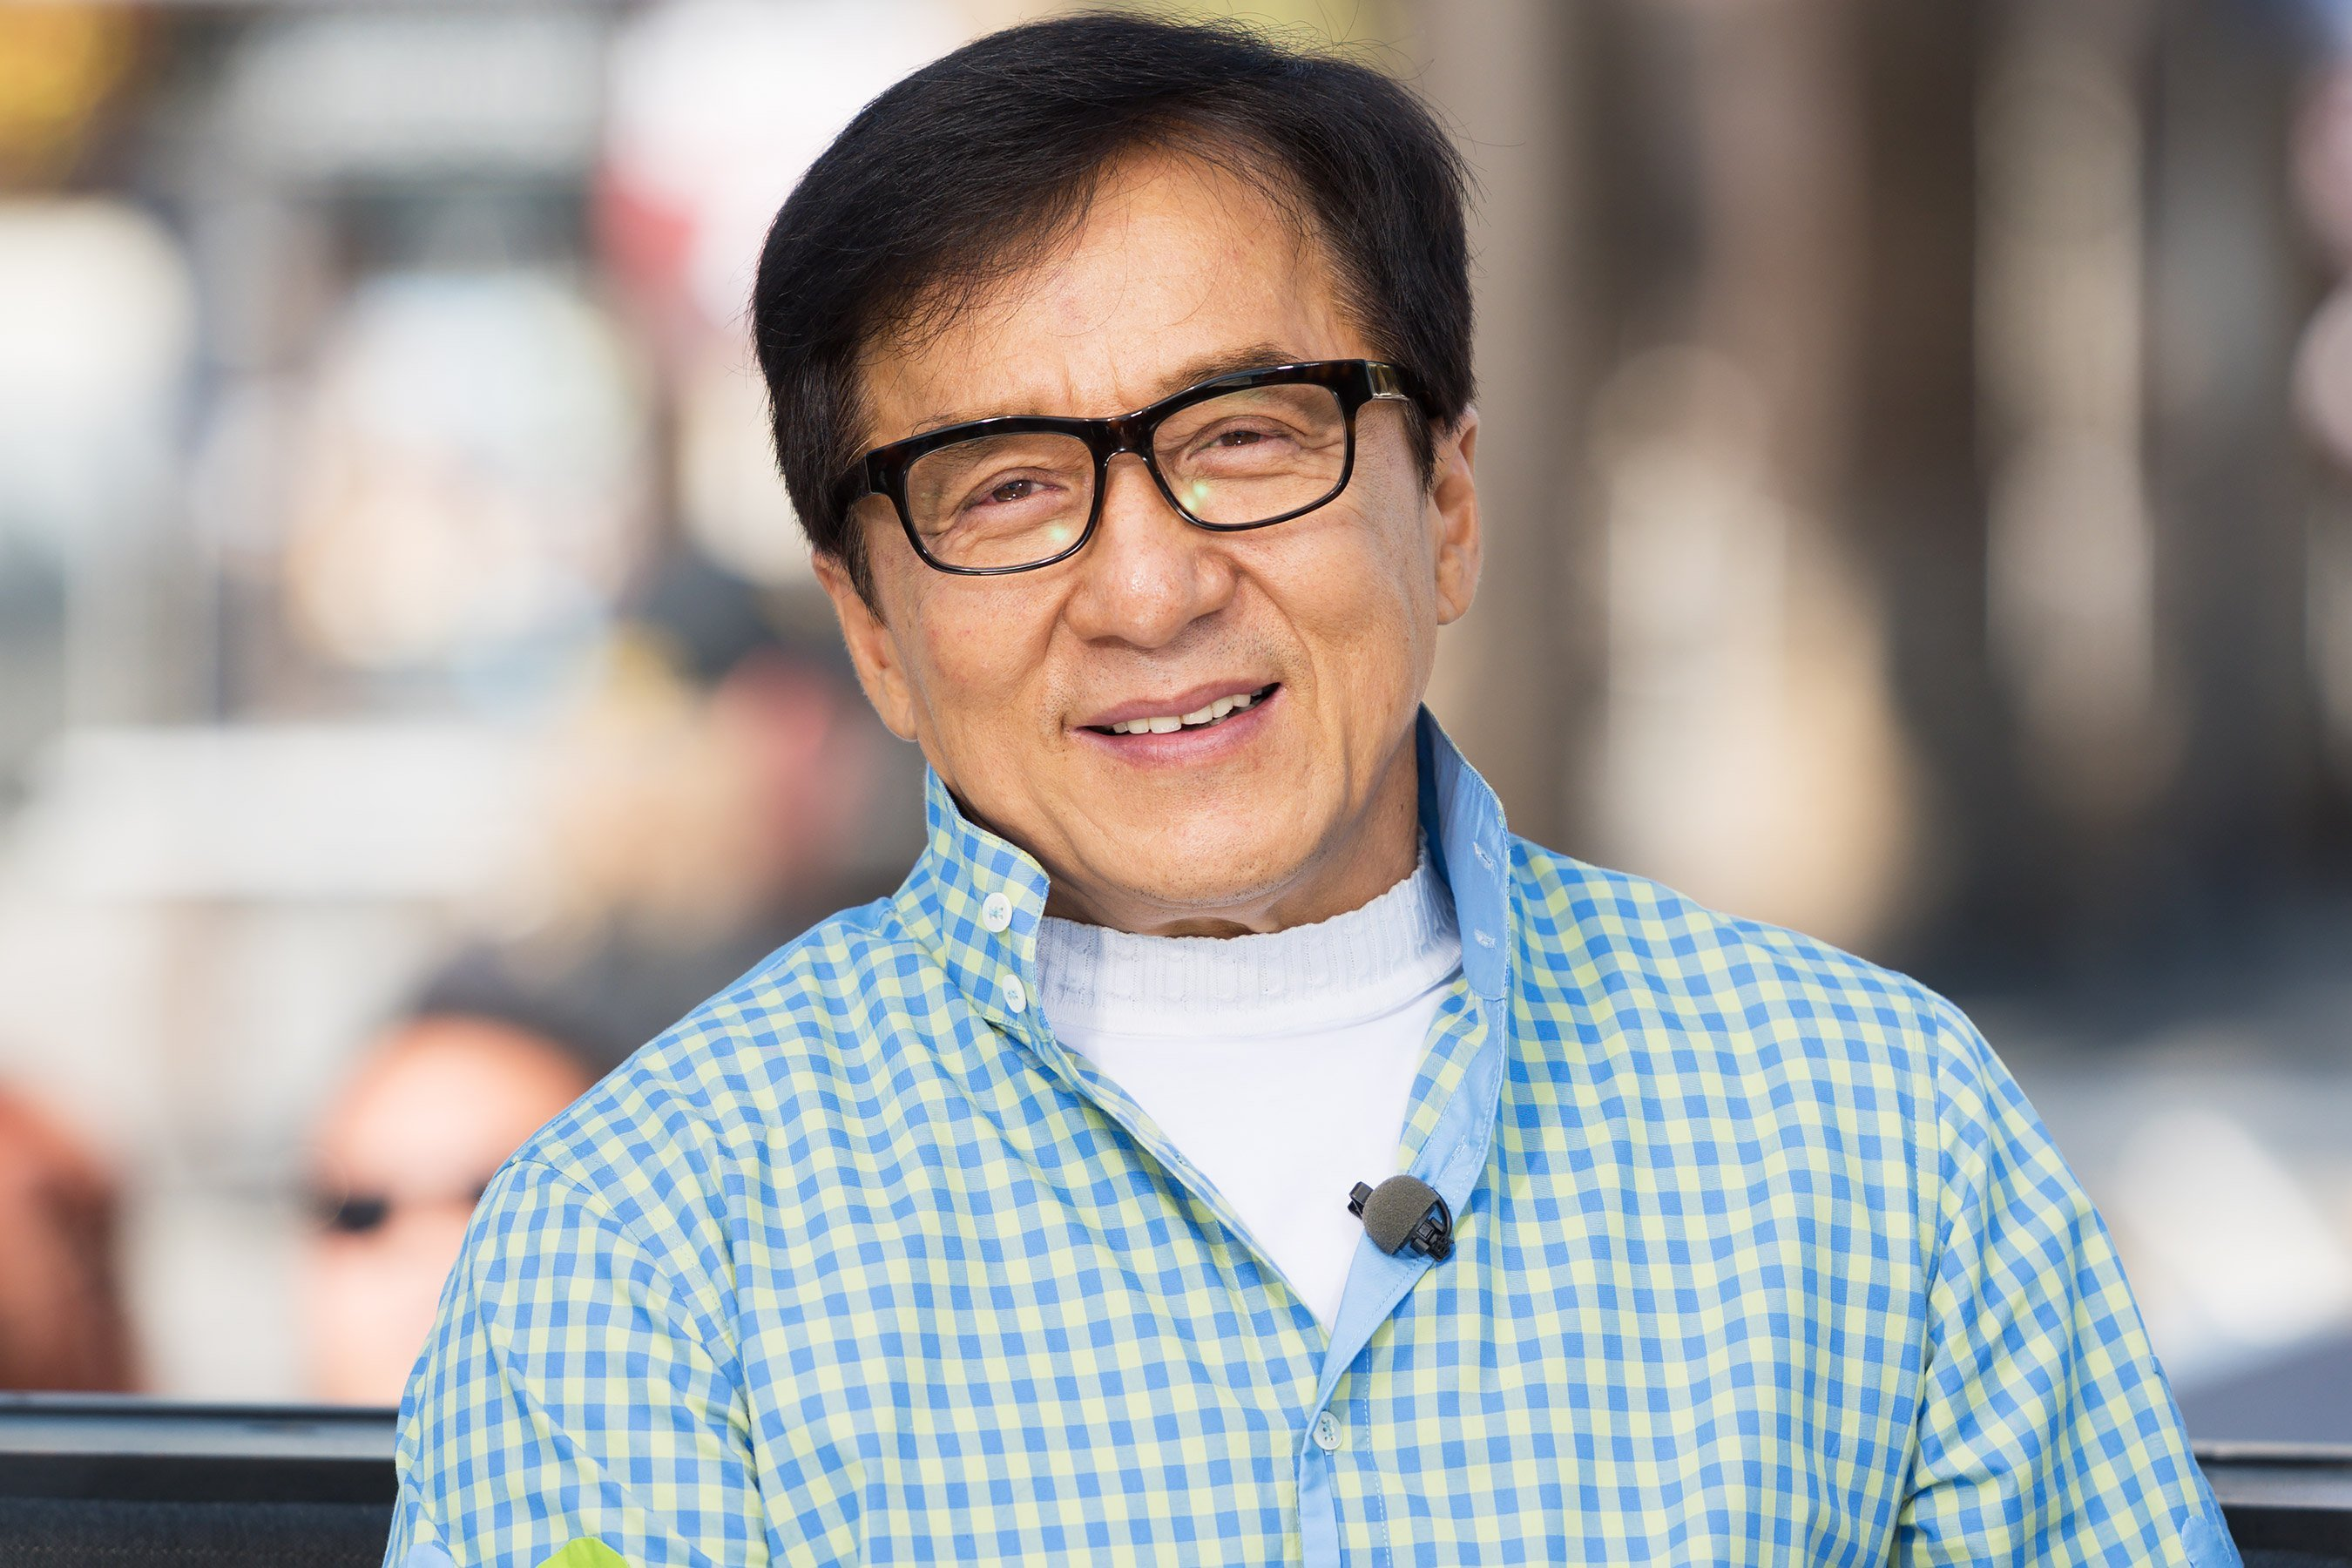 Jackie Chan Admits to Cheating on His Wife and Hitting His Son 'Once': I'm 'Very Regretful'